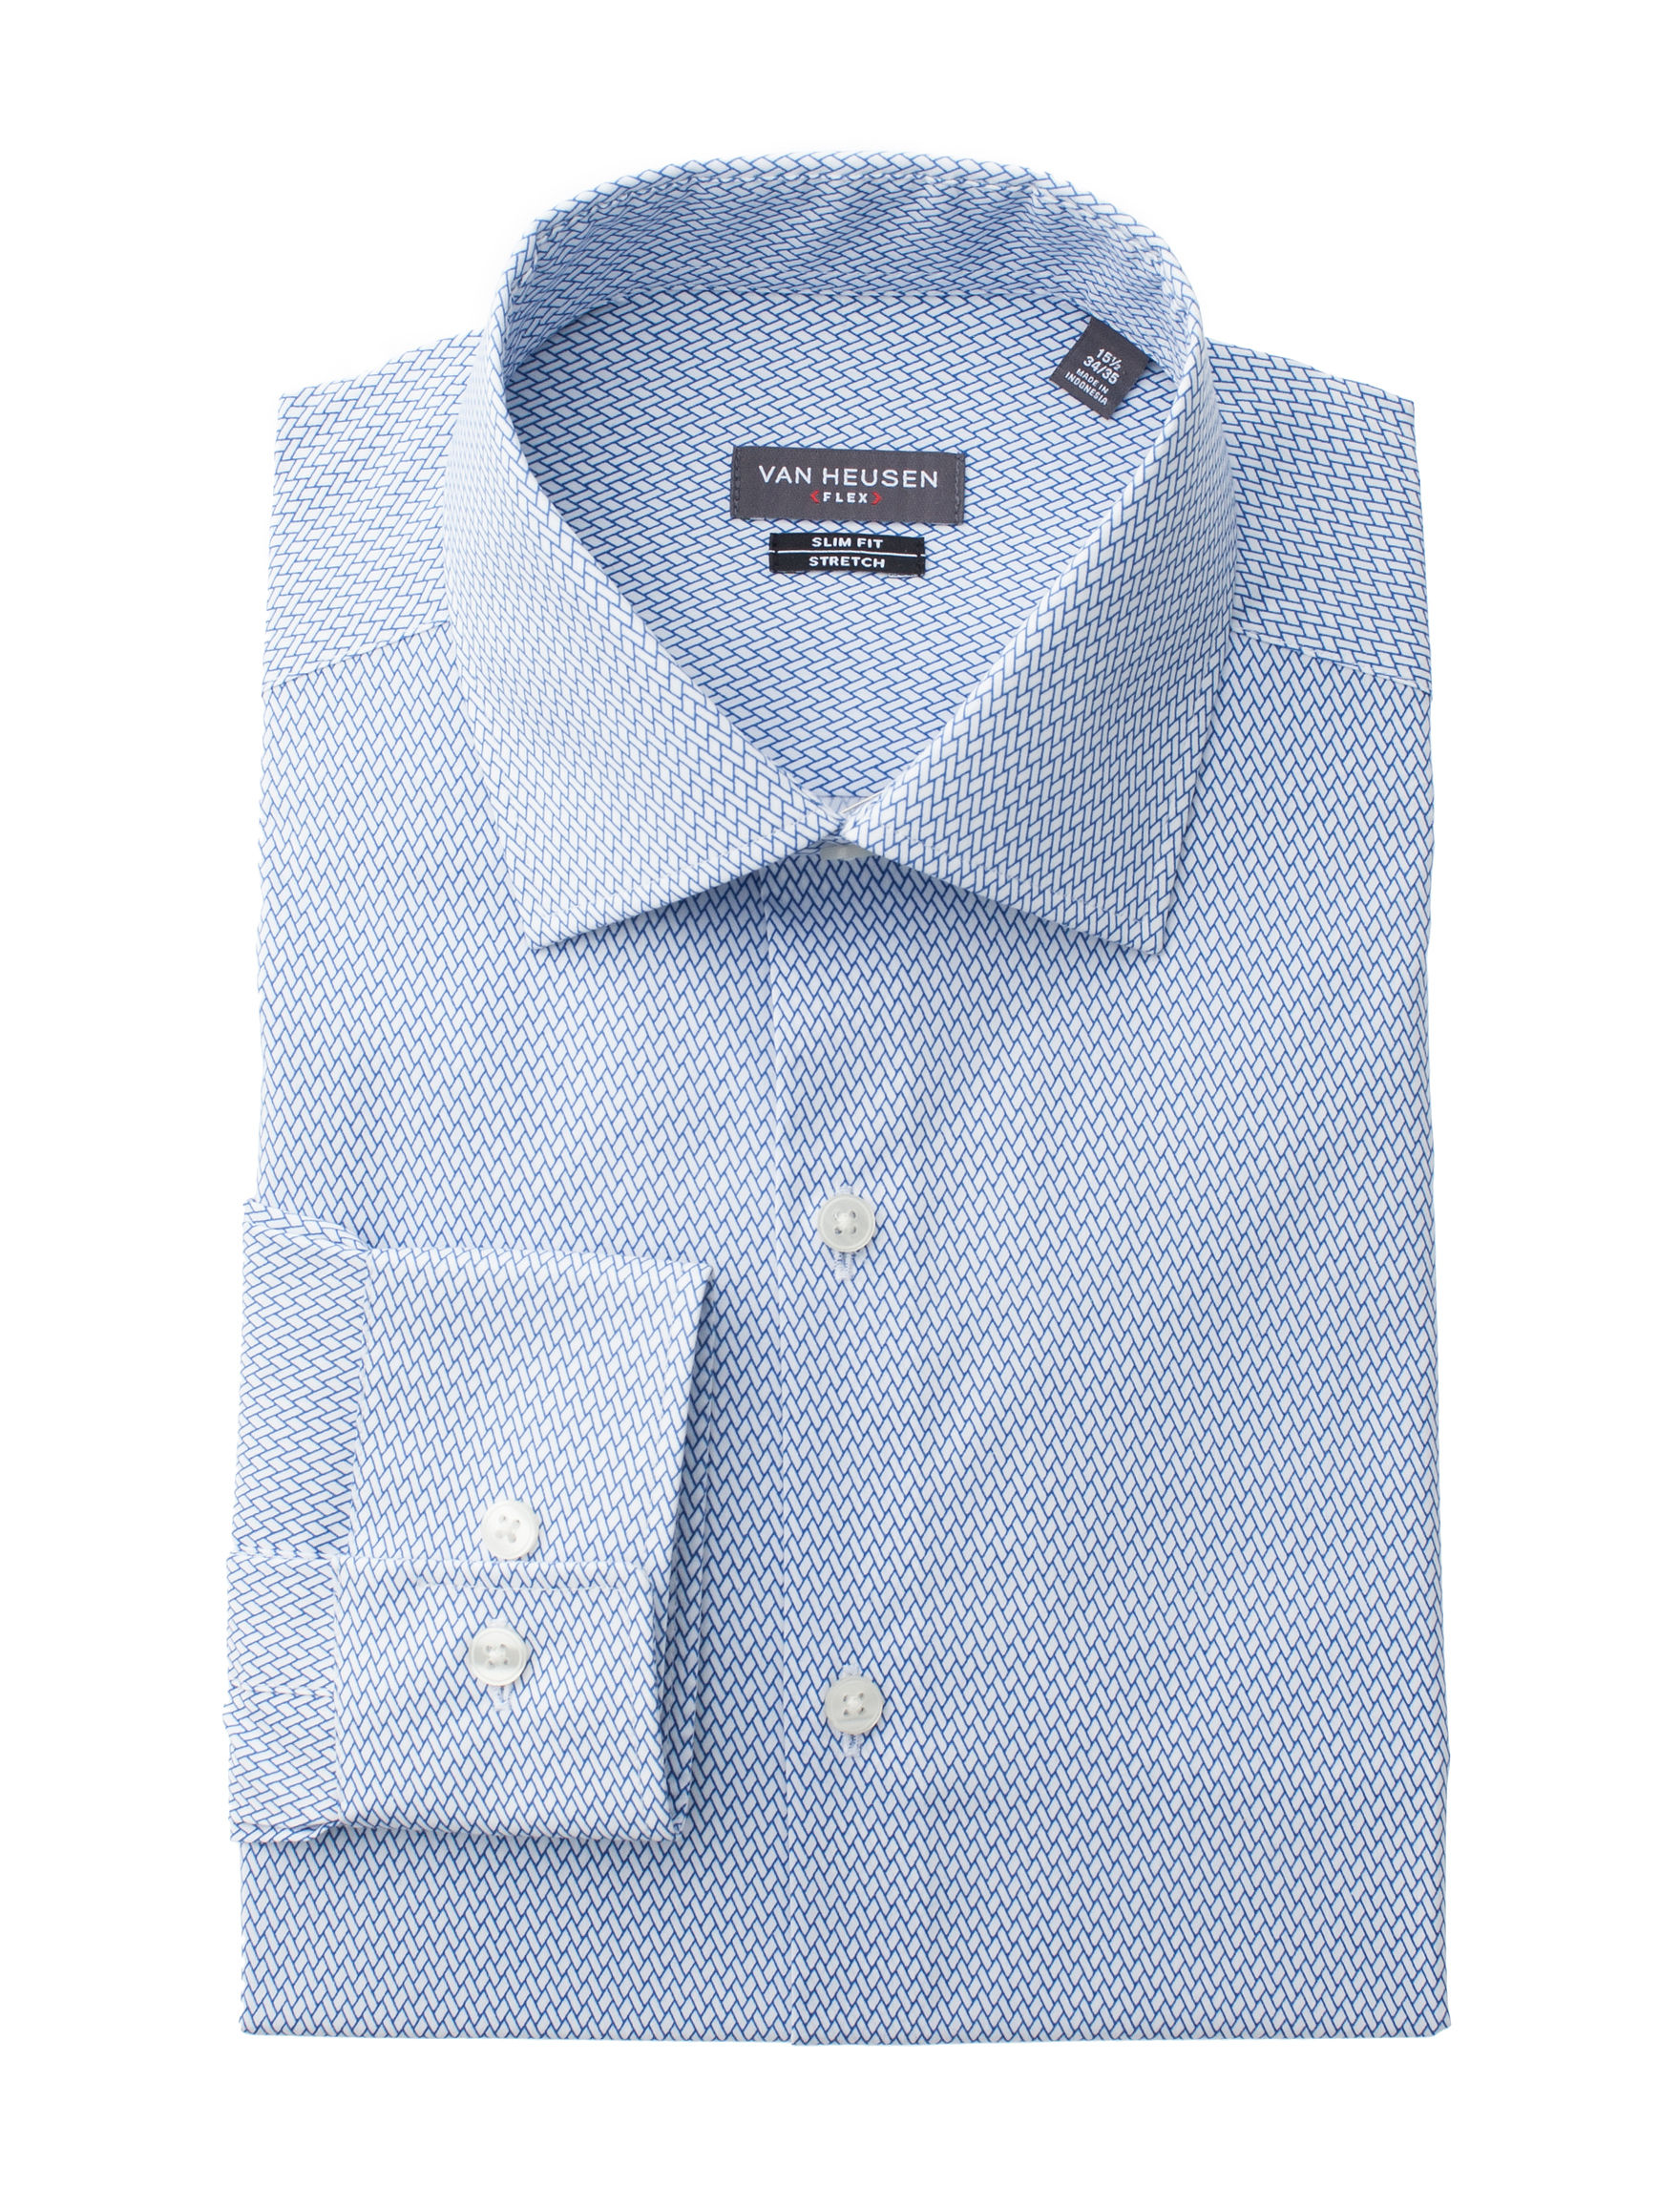 Van Heusen Flex Slim Fit Dress Shirt Chad Crowley Productions